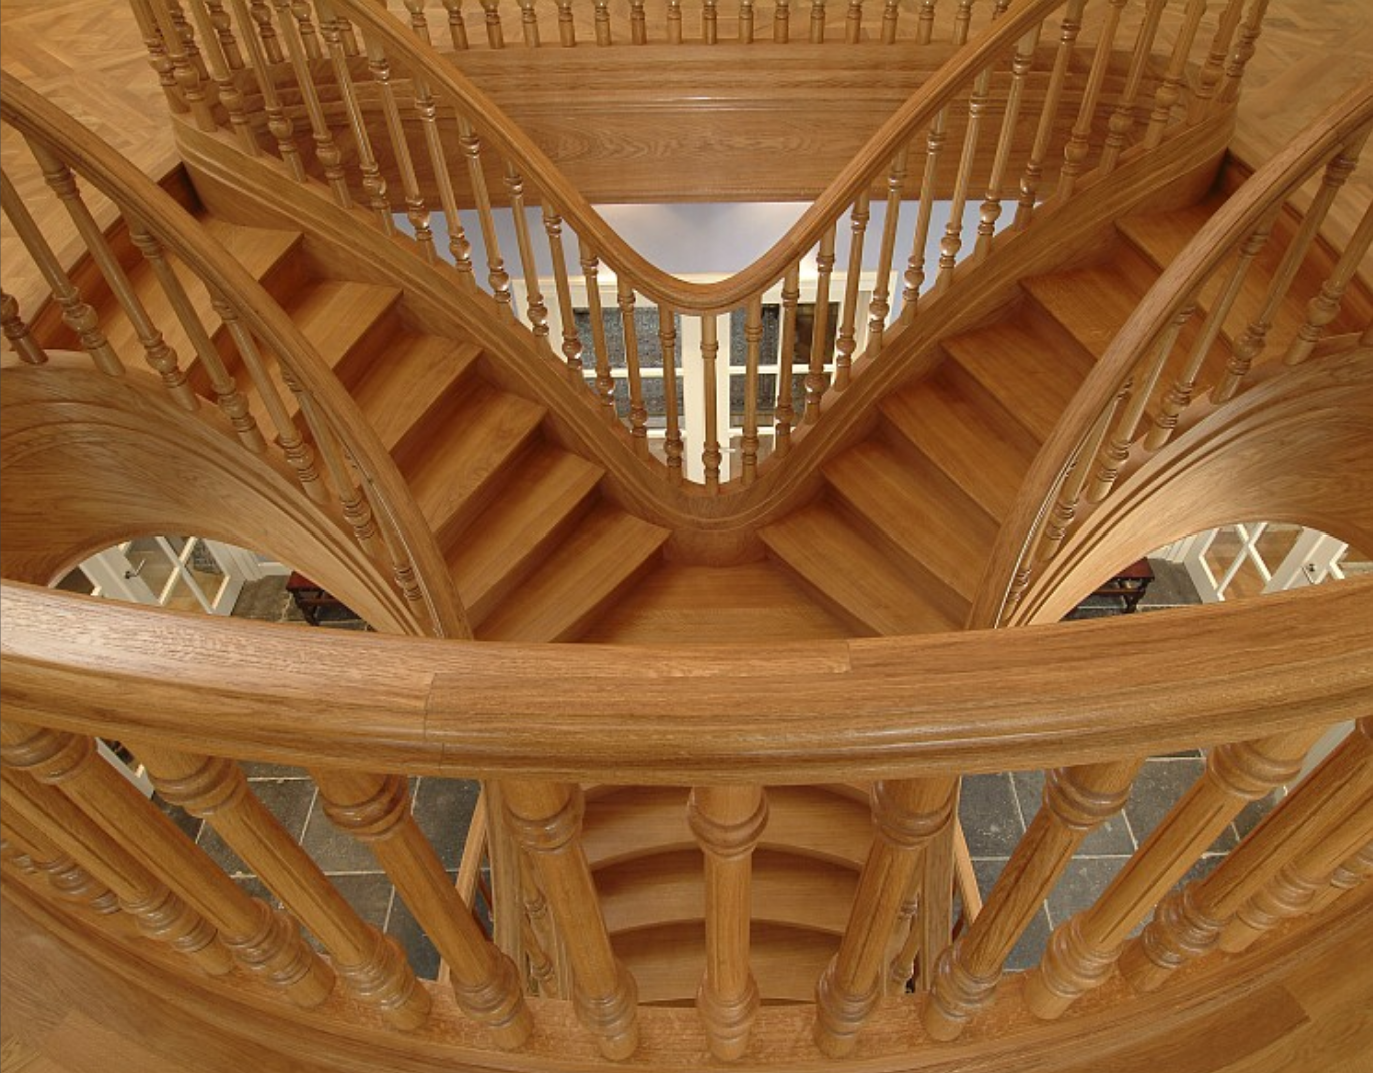 stairs owls image 1